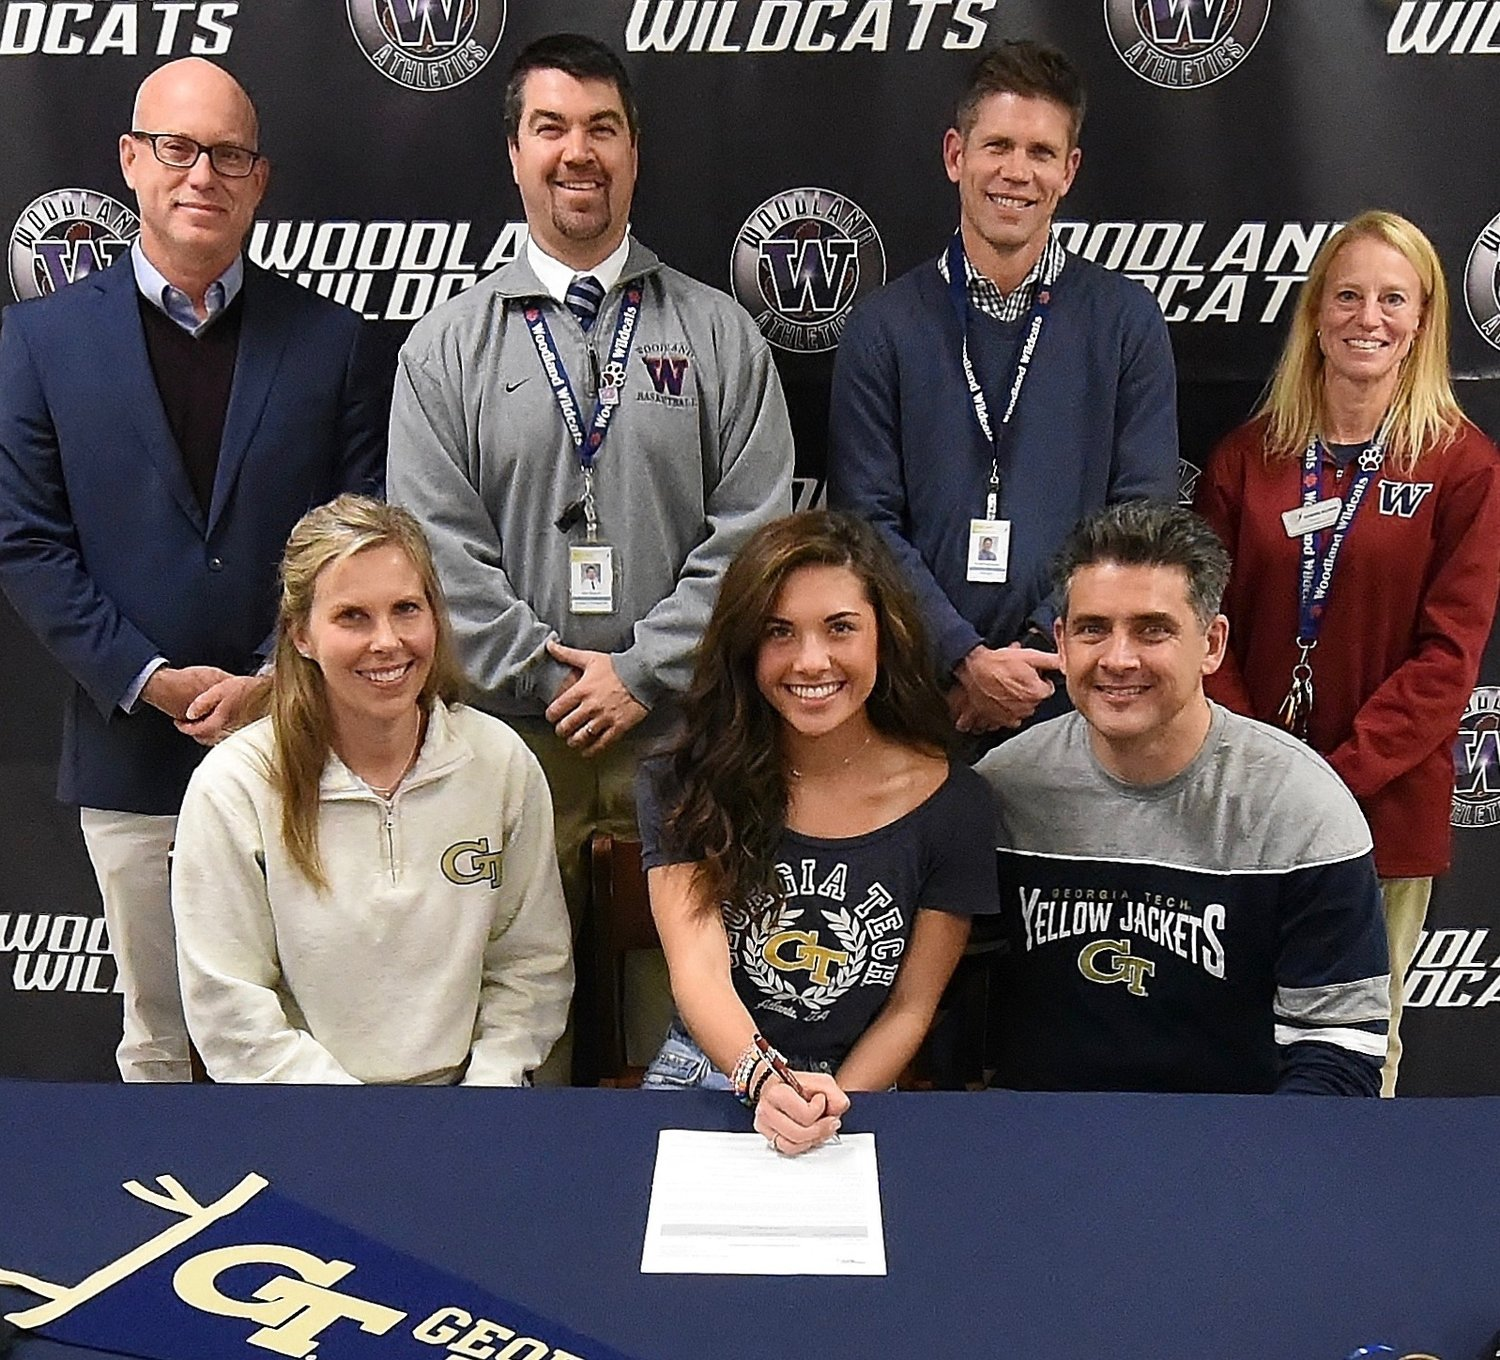 Woodland High senior McKenna Trapheagen signed to run cross country, indoor track and outdoor track at Georgia Tech. On hand for the signing were, from left, front row: Sheri Trapheagen, mother; and Alec Trapheagen, father; back row: Rob Forbes, WHS cross country coach; John Howard, WHS athletic director: David Stephenson, WHS principal; and Catherine Bollwerk, WHS cross country coach.